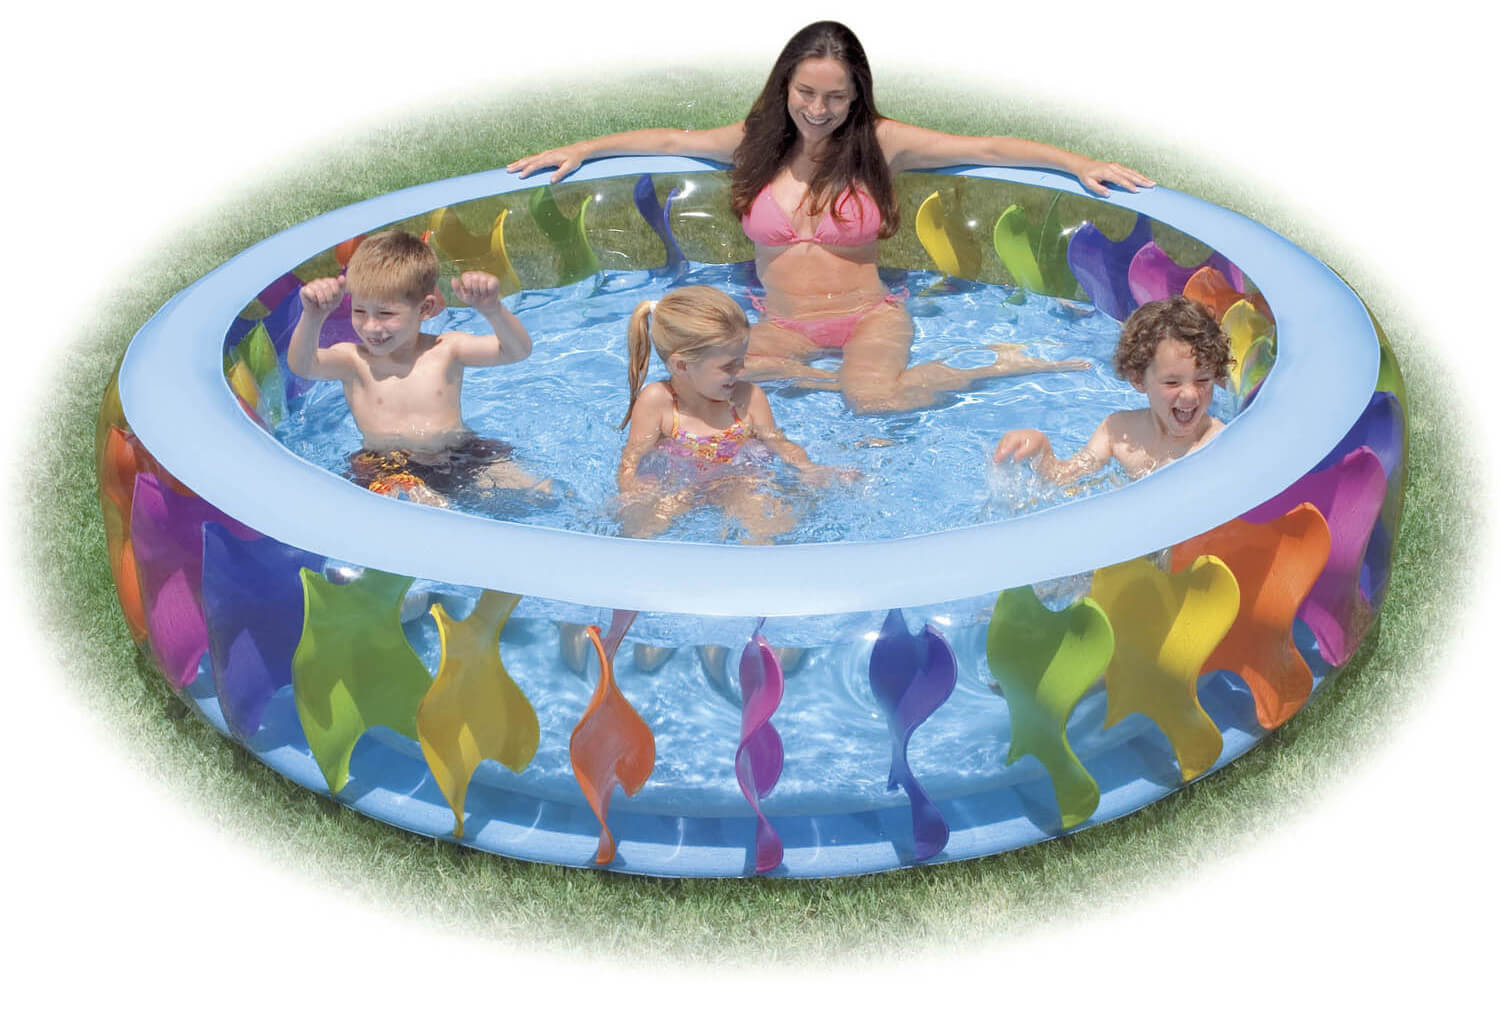 This large round inflatable pool has a fun and colorful design that is perfect for children. It is large enough for multiple people which makes it perfect for multiple children families.